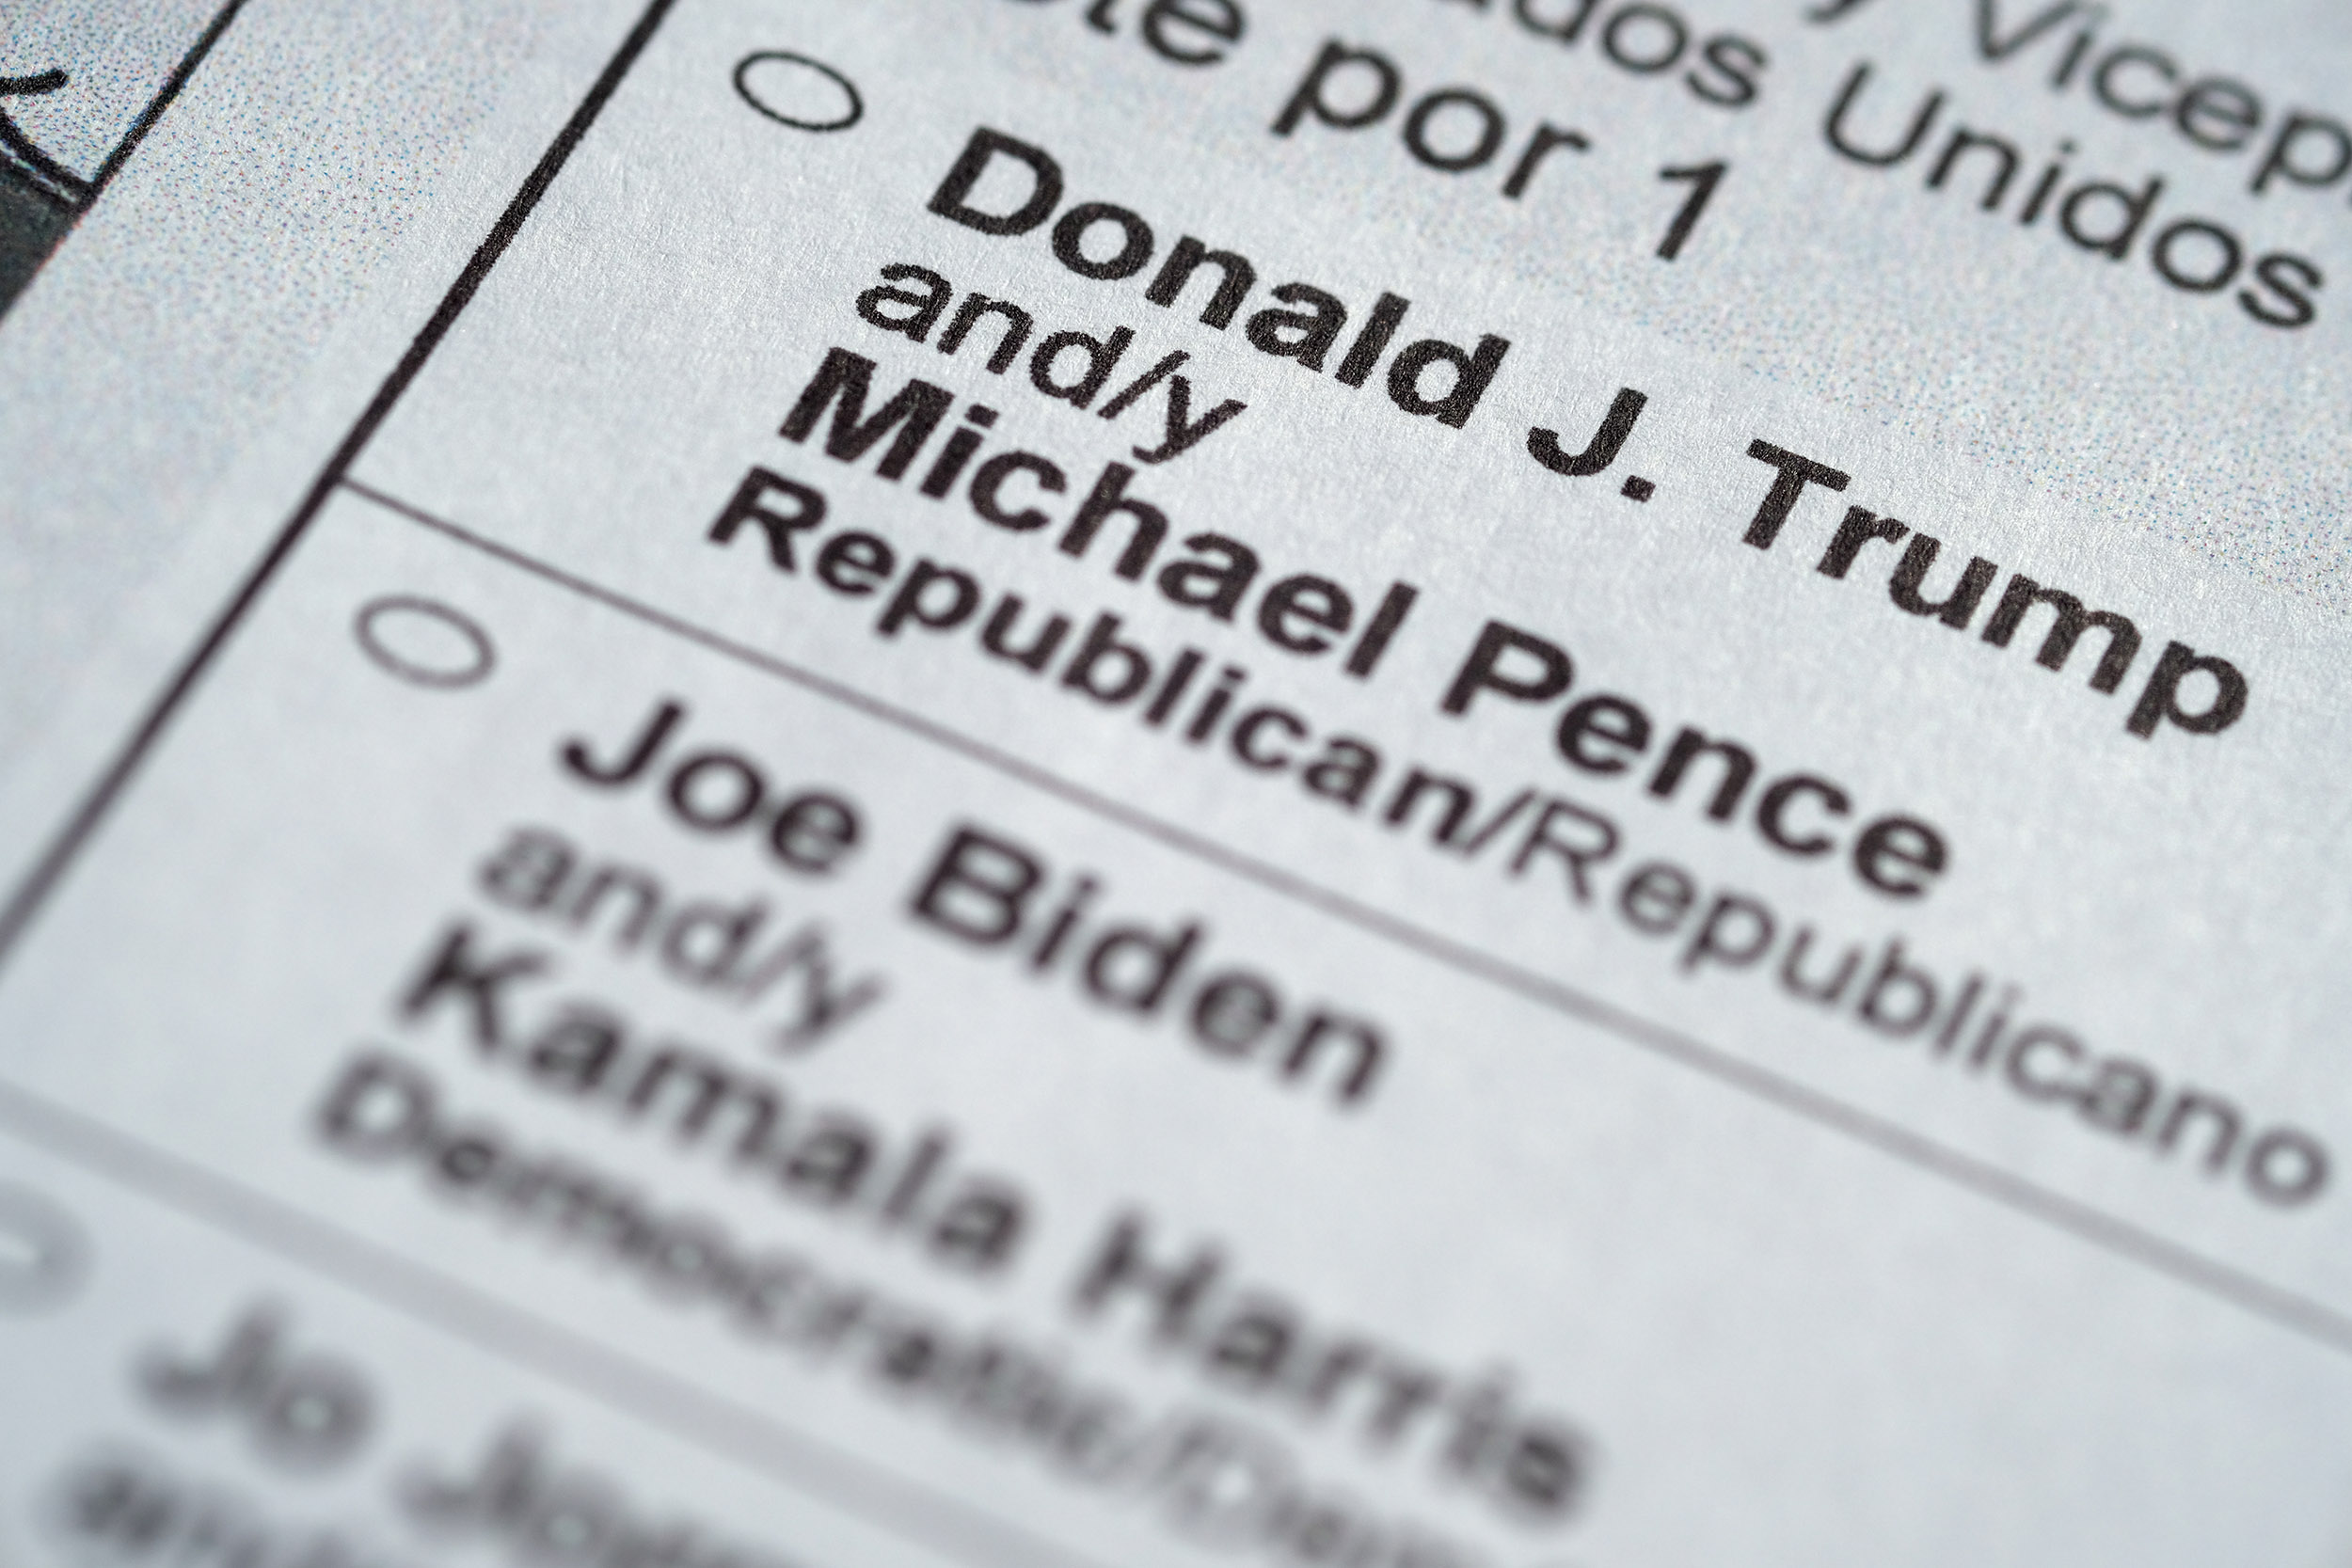 Overseas ballot requests set record, but will votes reach U.S. shores?